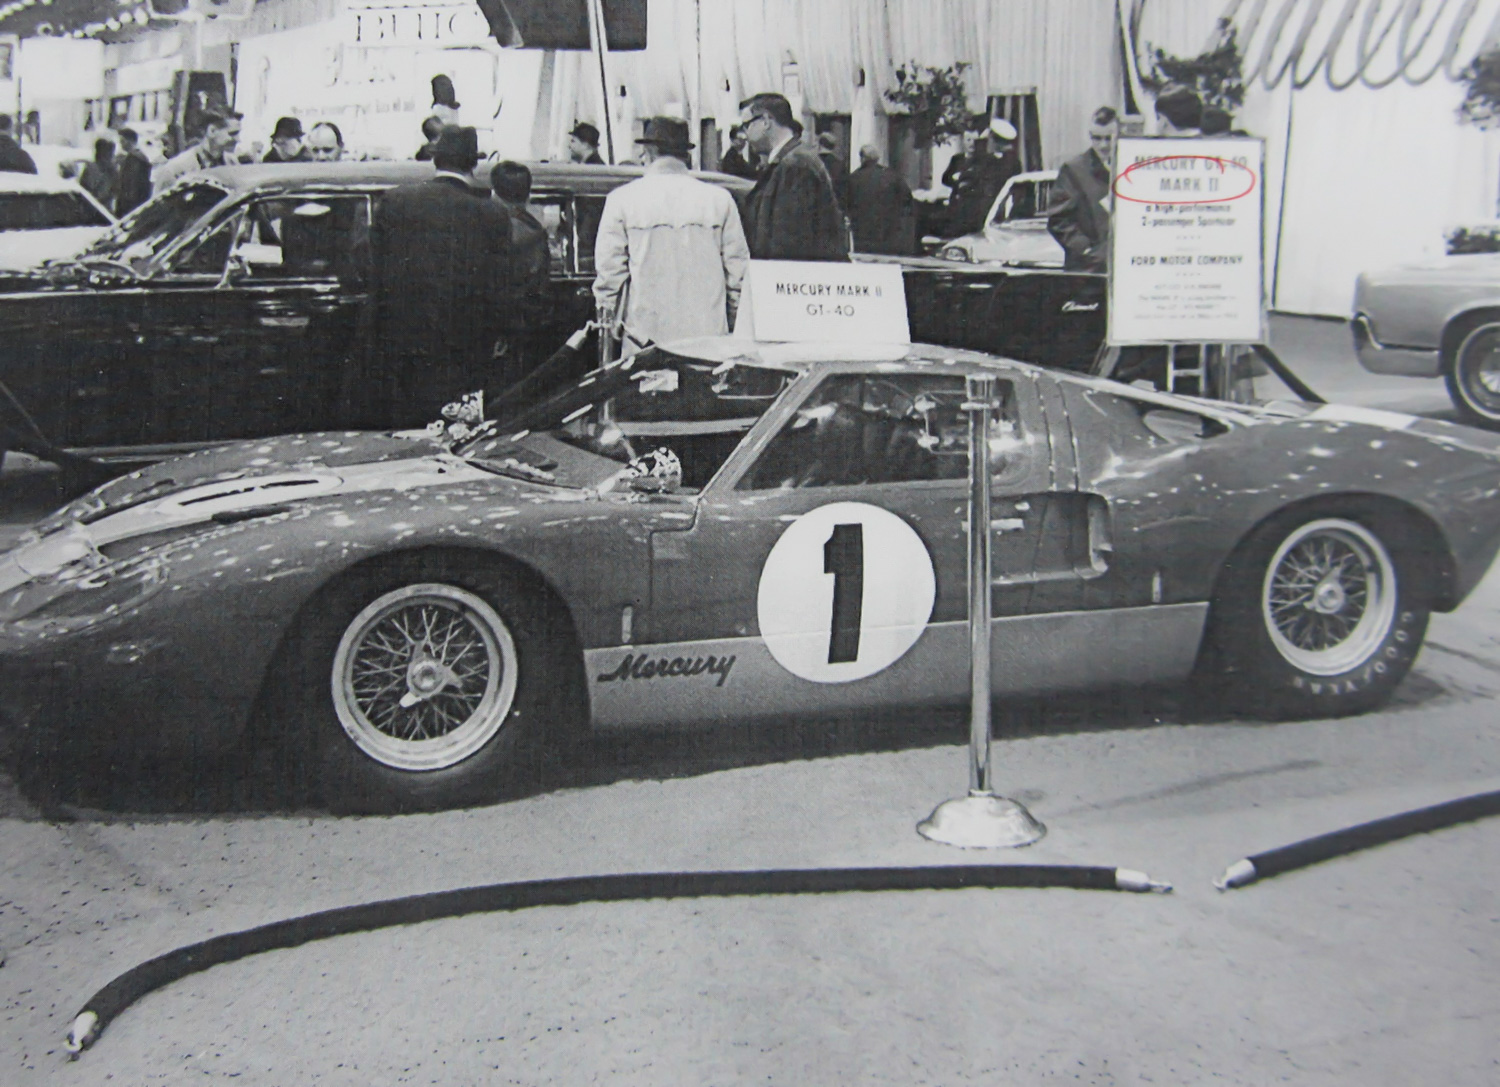 The Mercury GT40 Mk II (actually a Ford GT40 Mk I) at the 1967 Chicago Auto Show.